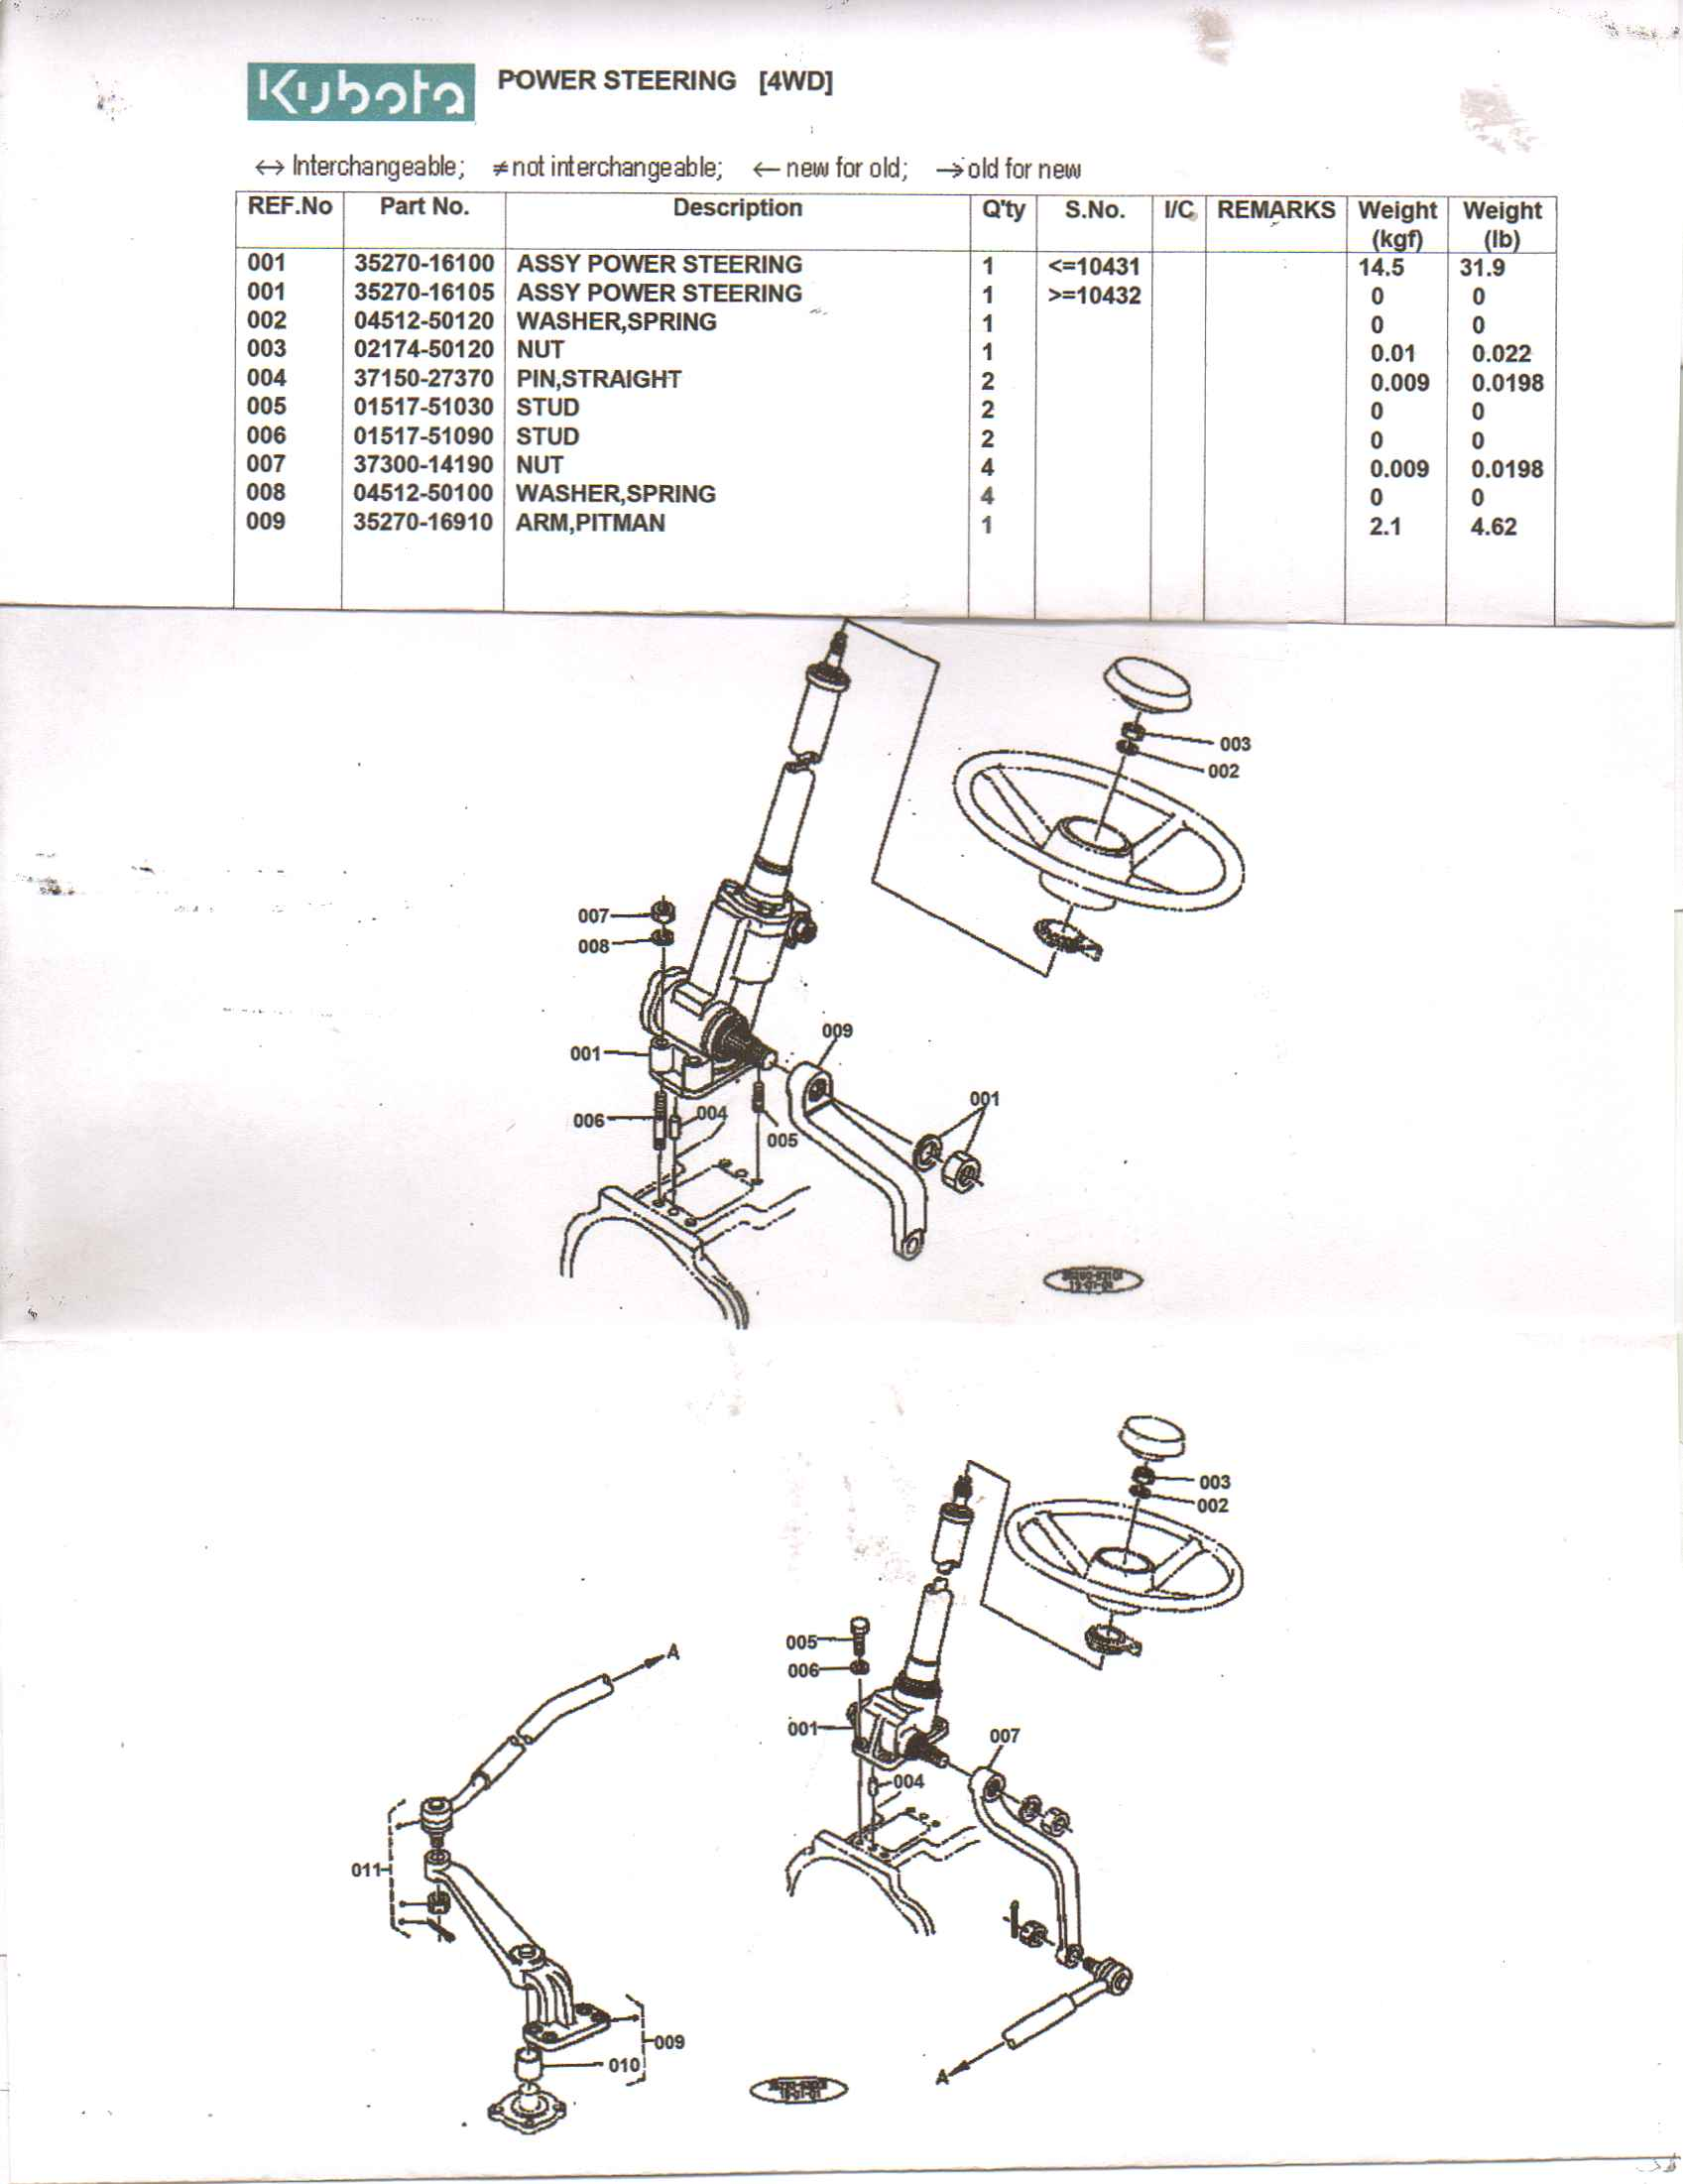 Power Steering Kits For Kubota Tractors : I have a l wd with b fel is it possible and